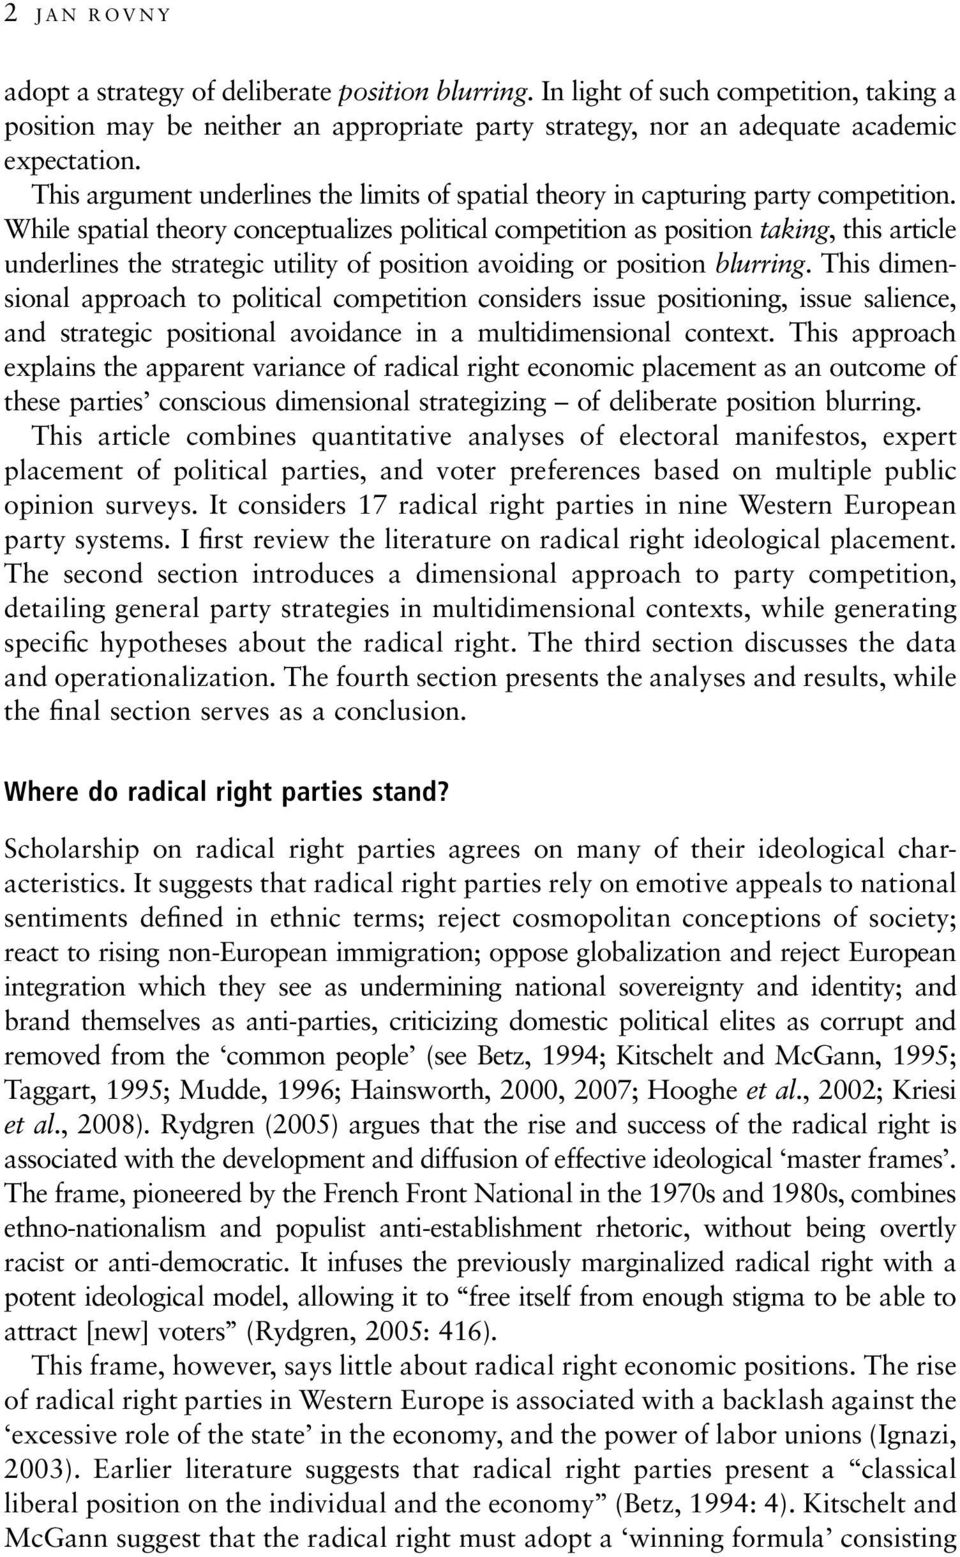 While spatial theory conceptualizes political competition as position taking, this article underlines the strategic utility of position avoiding or position blurring.